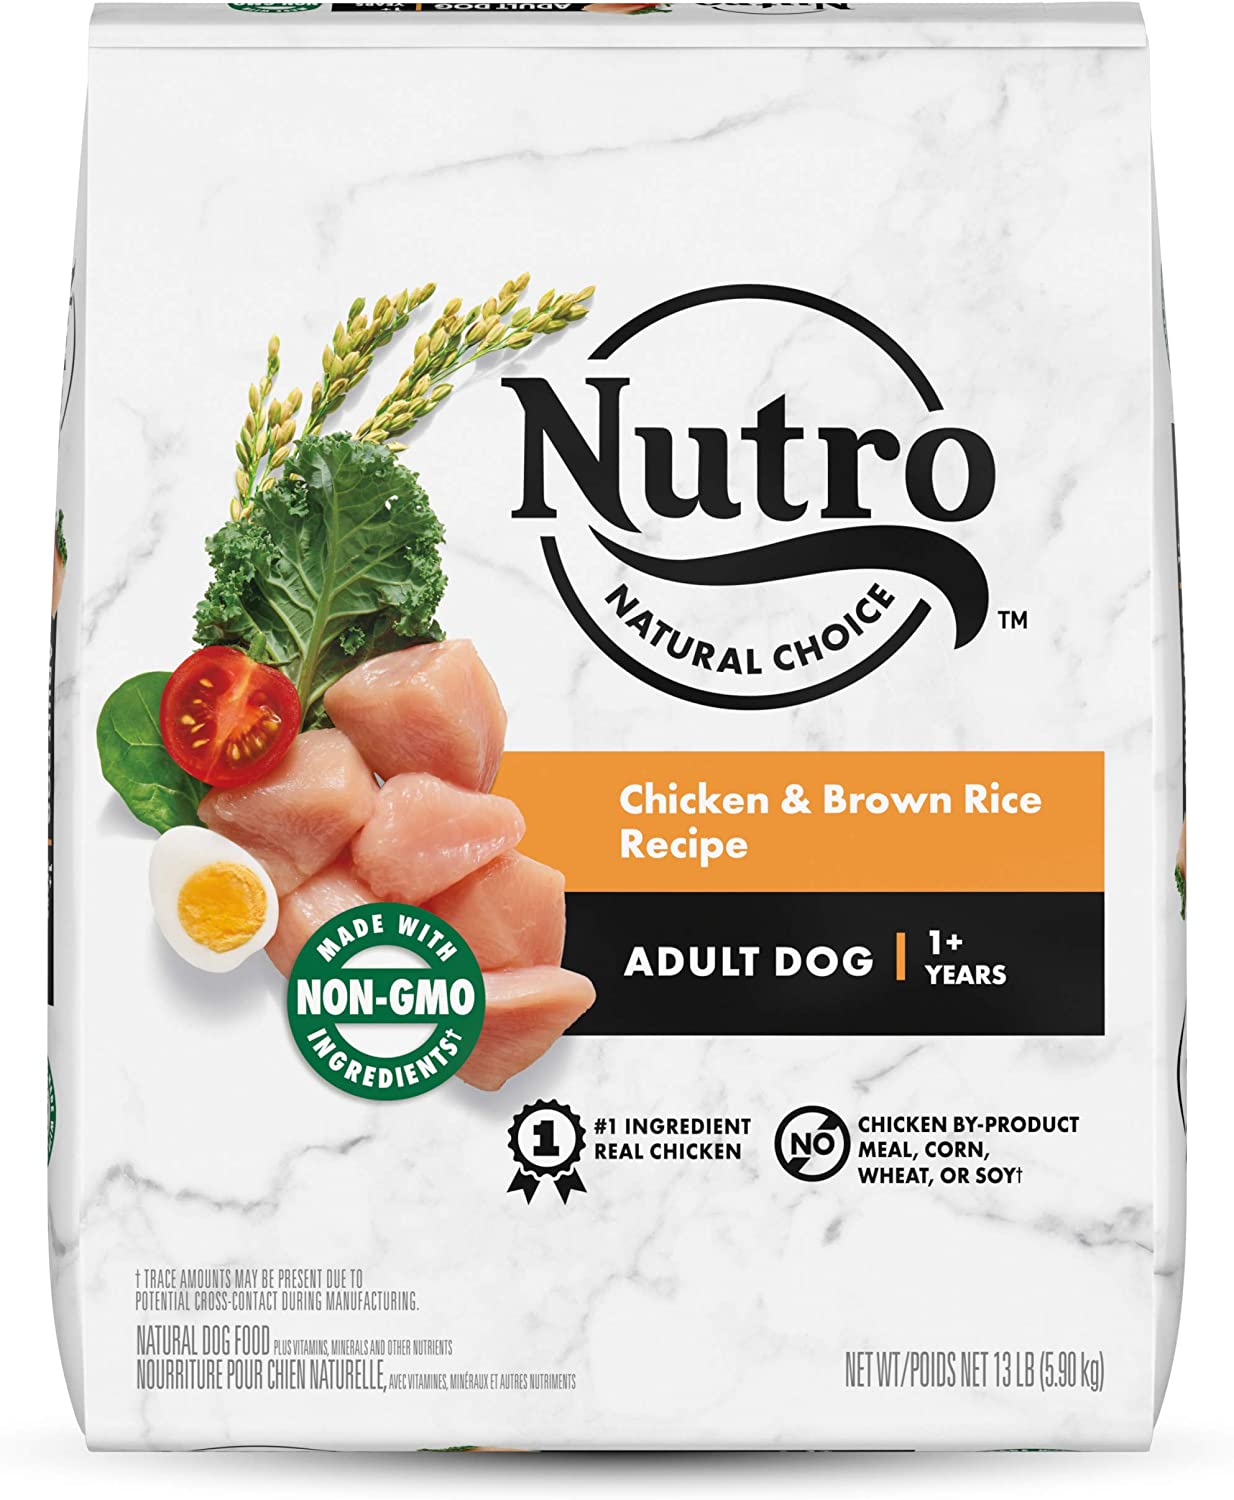 NUTRO Natural Choice Adult Dry Dog Food, Chicken & Brown Rice Recipe Dog Kibble, 13 lb. Bag